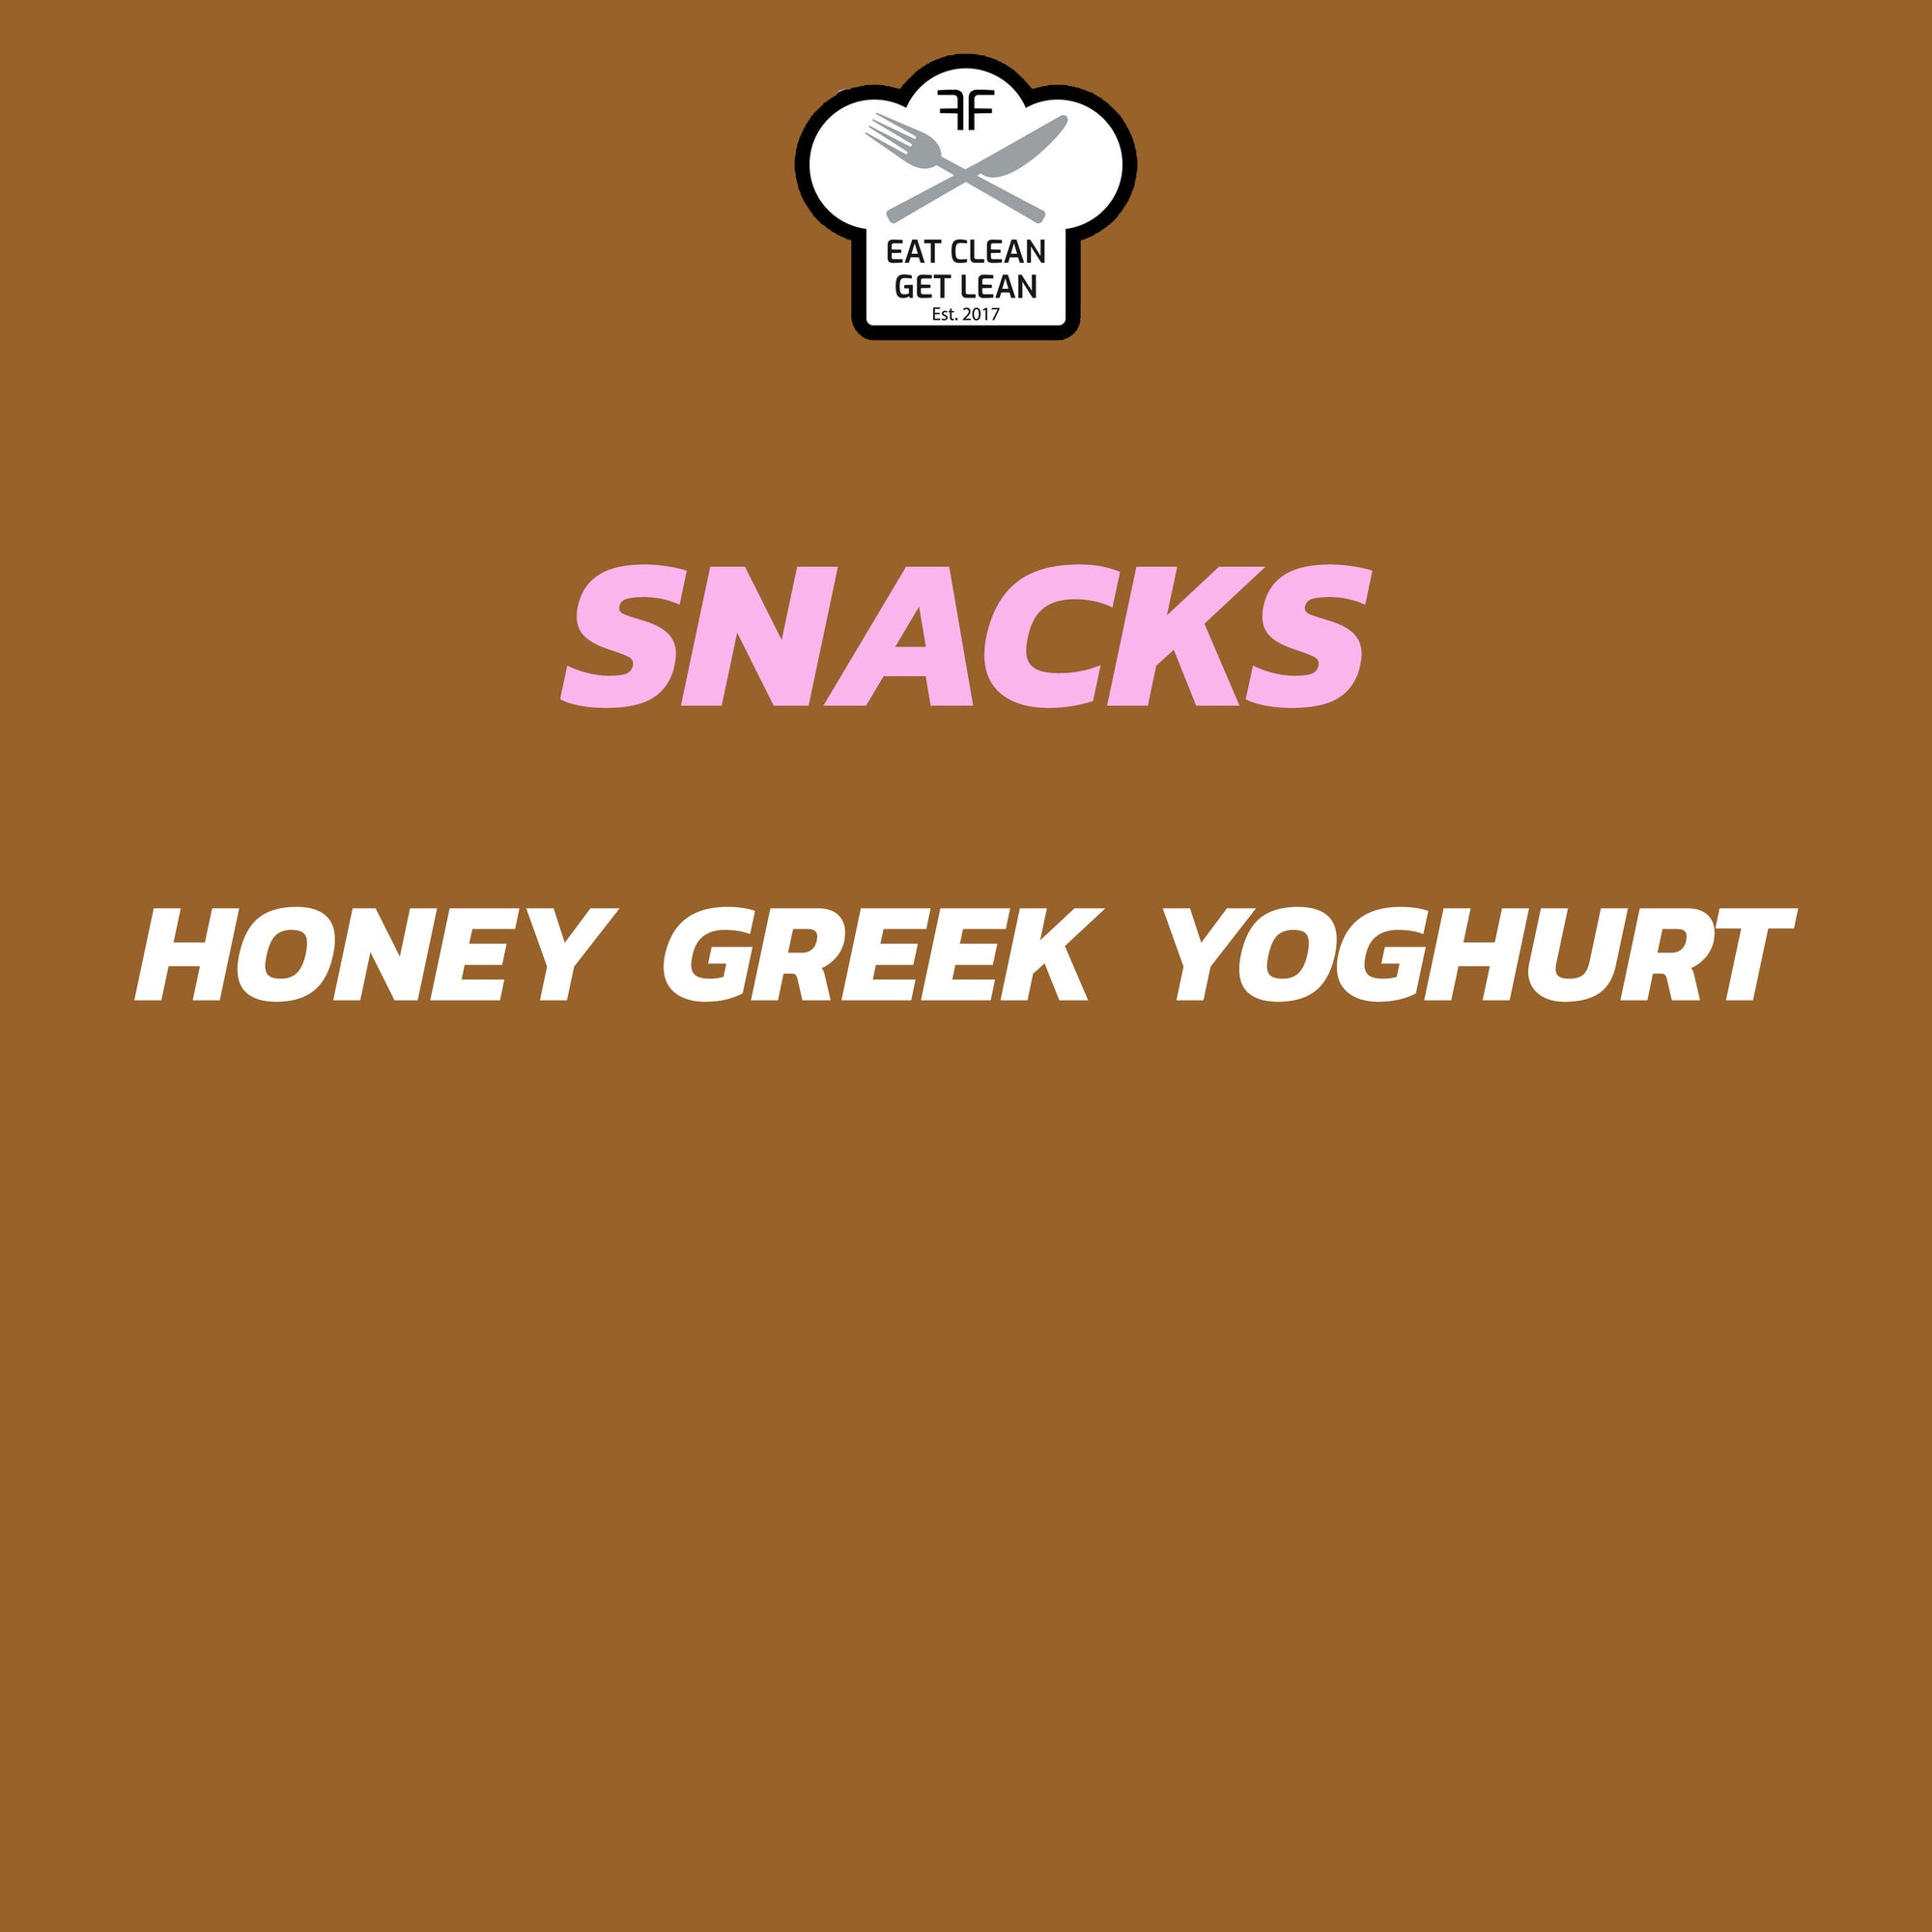 Snacks - Honey Greek Yoghurt